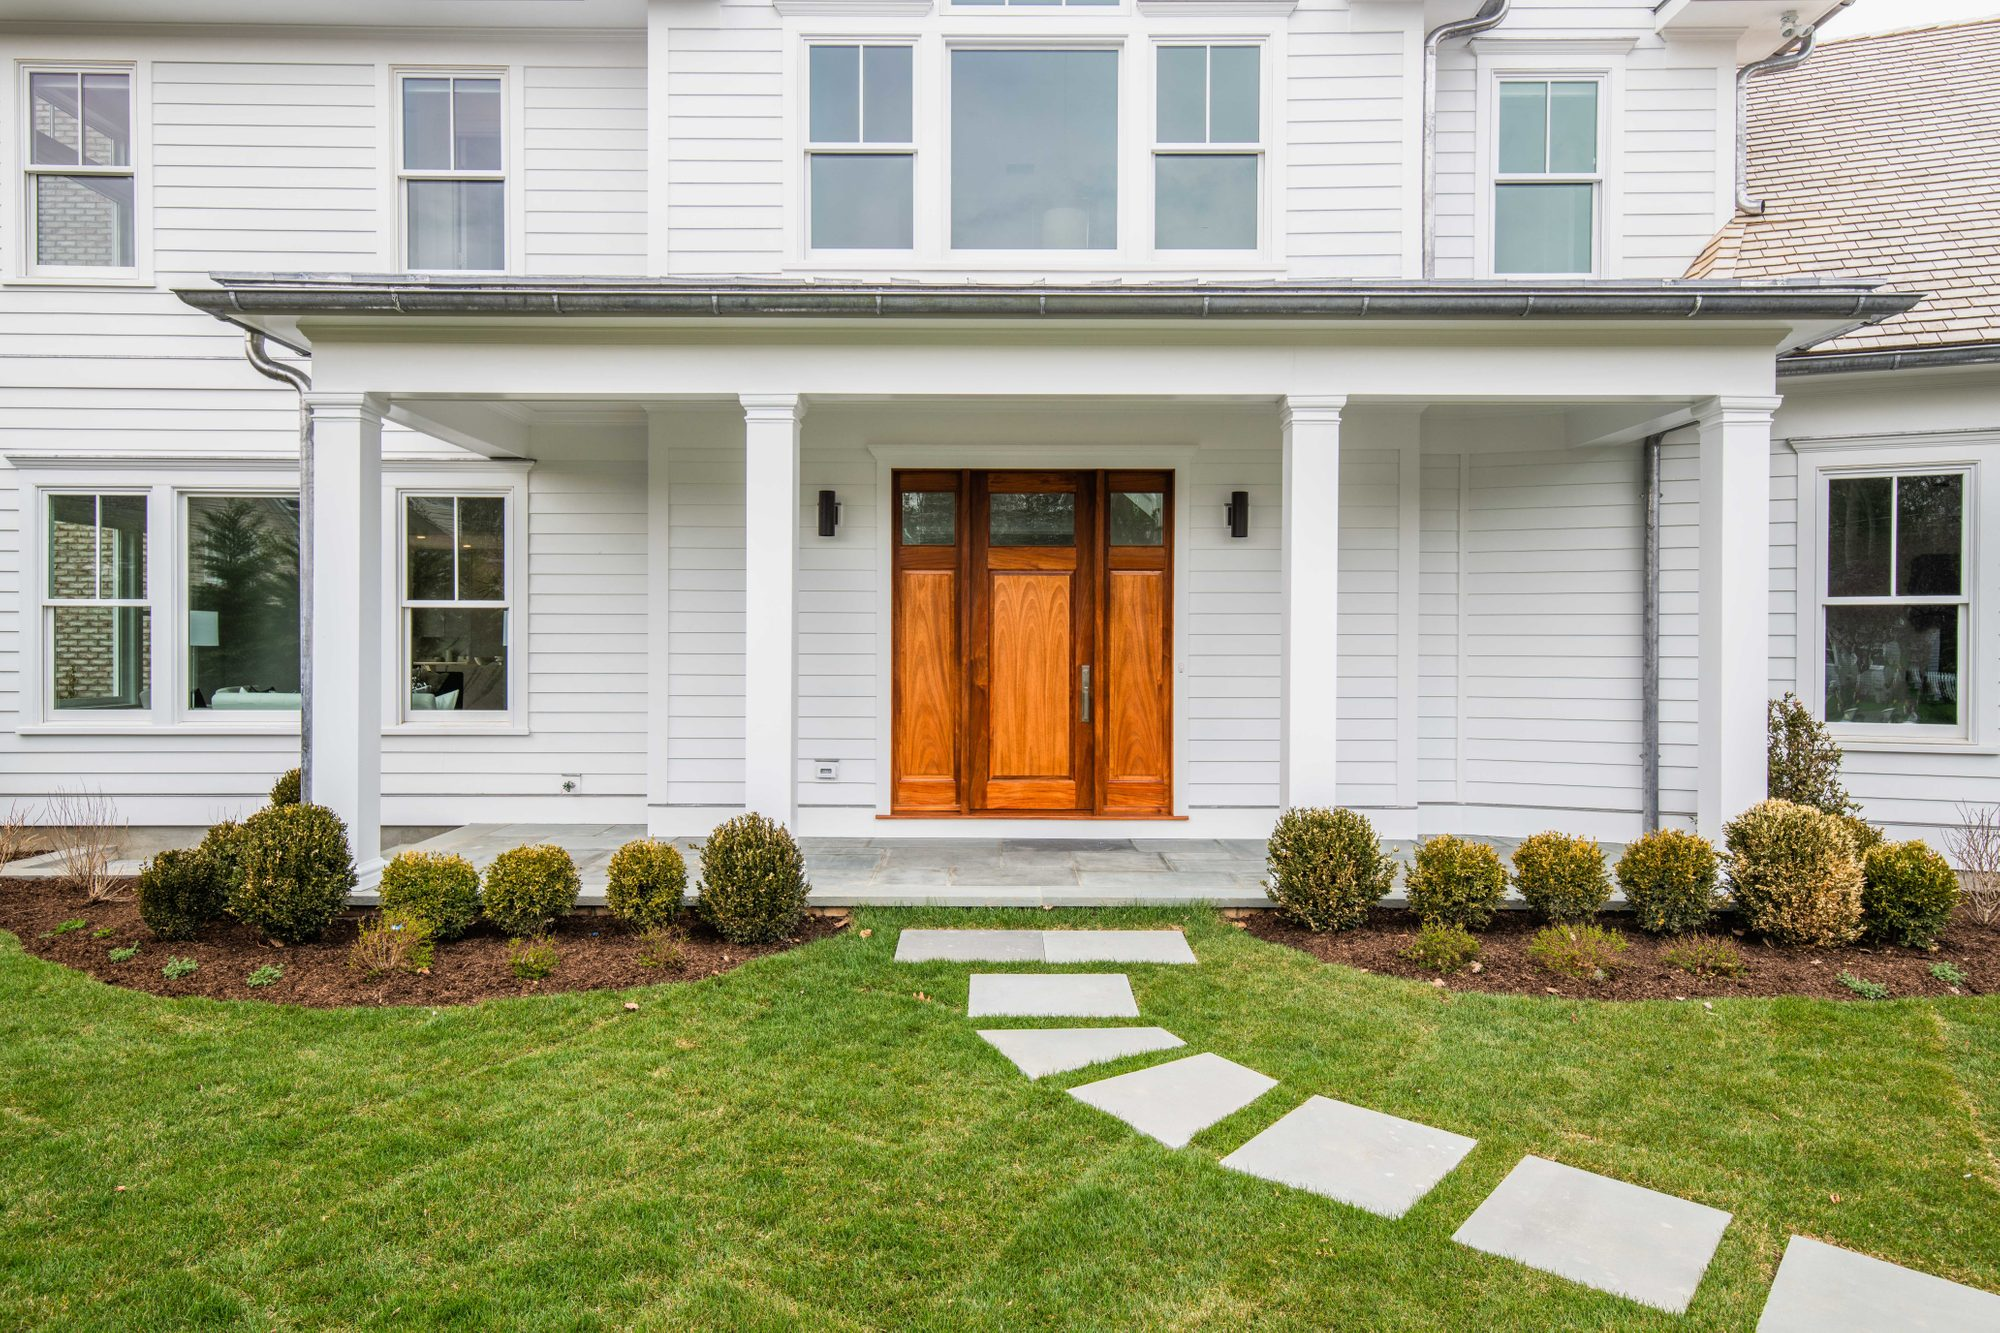 Covered front porch with a blue stone paver floor. White siding & columns with a natural stained front door.